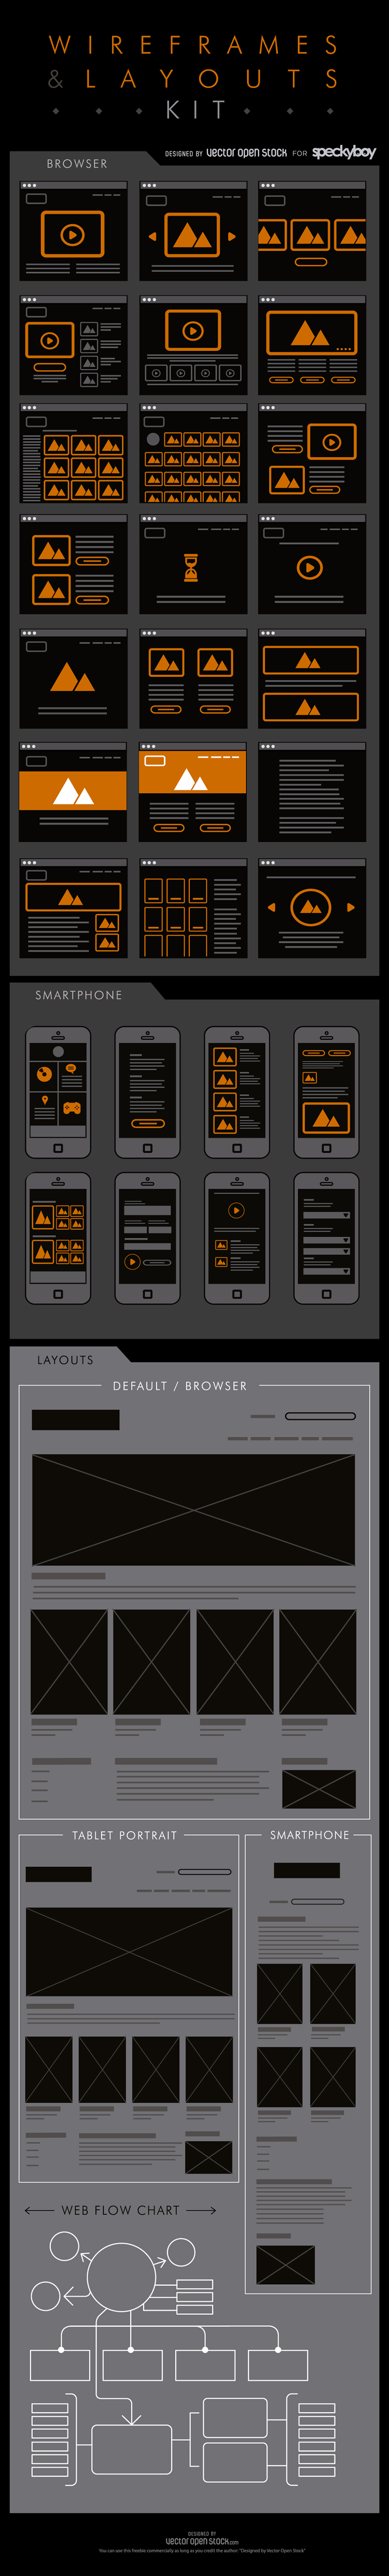 wireframe layout toolkit free illustrator ux web mobile design